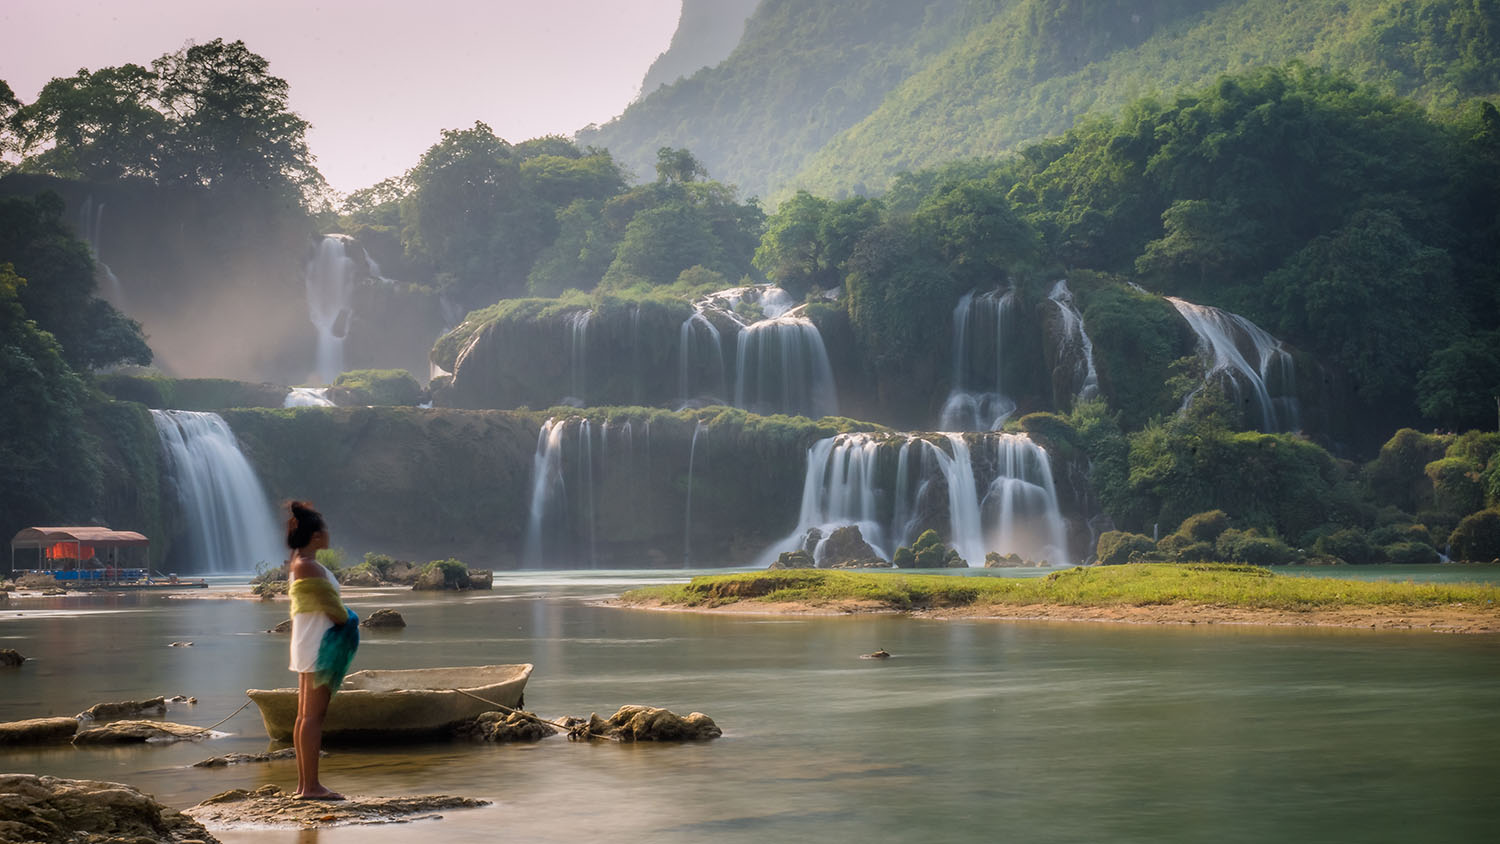 BAN GIOC WATERFALL. This body of water separates Vietnam from China. Photo by Tobias Nussbaumer/Rappler